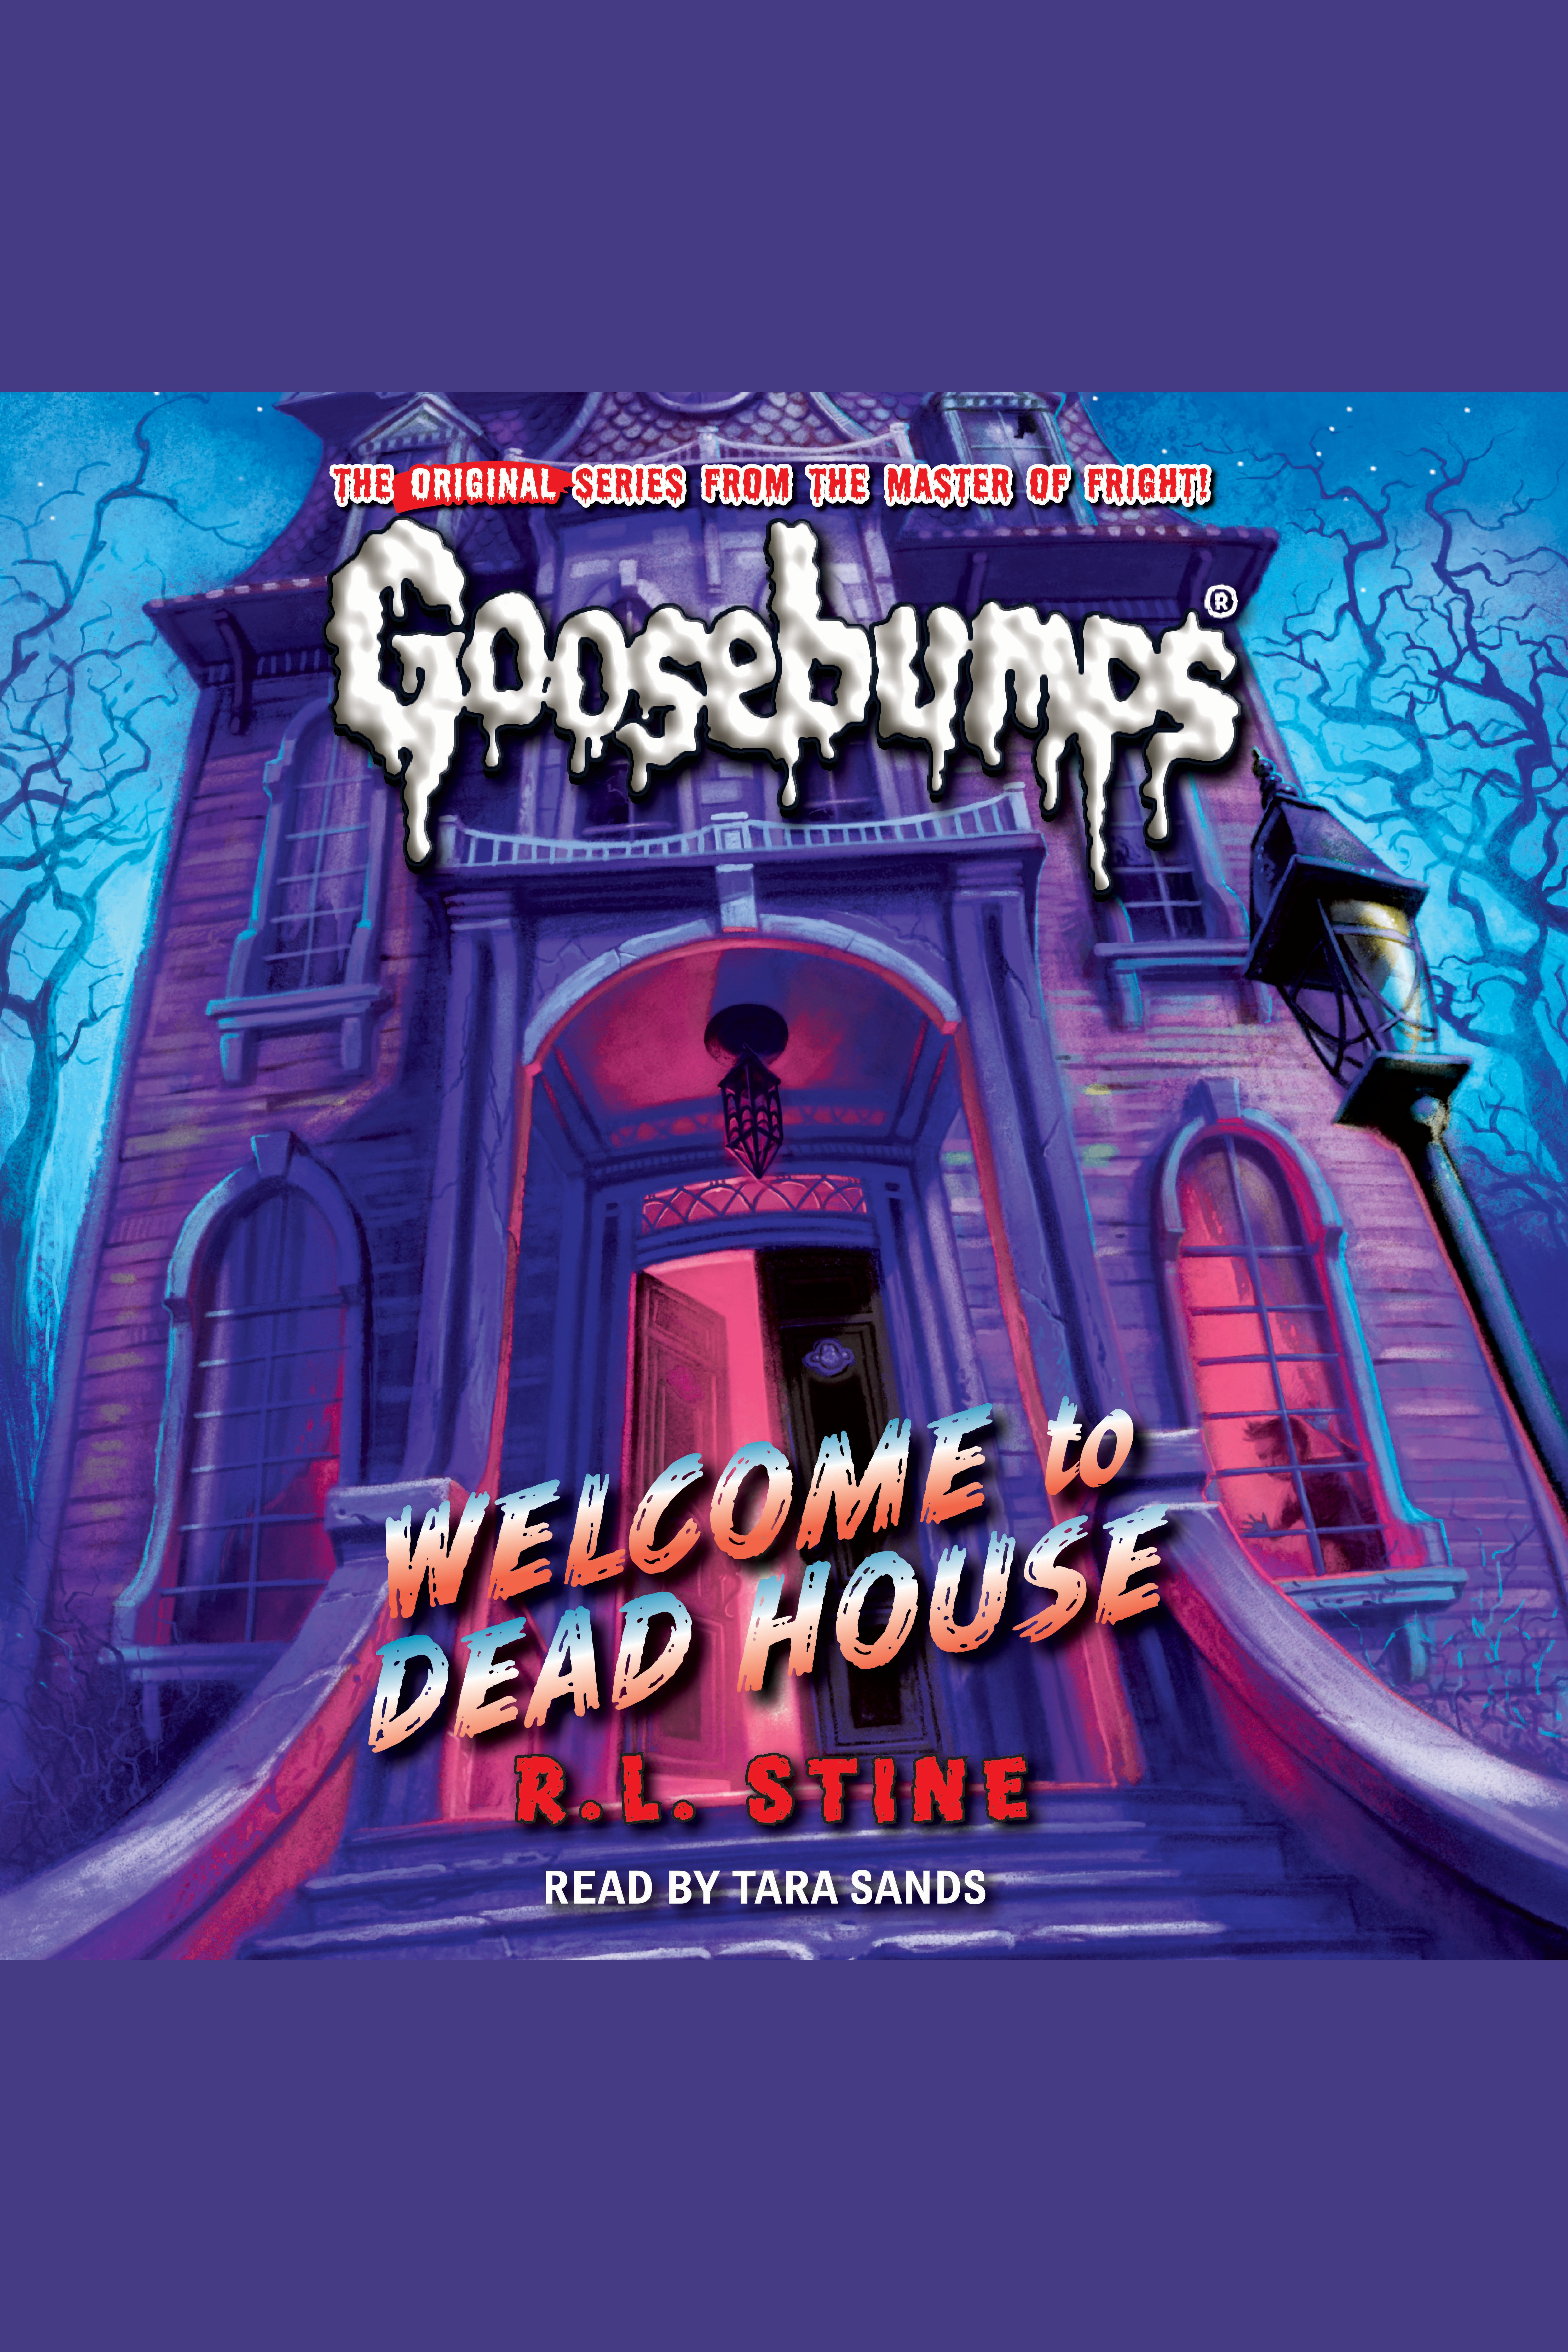 Classic Goosebumps - Welcome to Dead House Welcome to Dead House